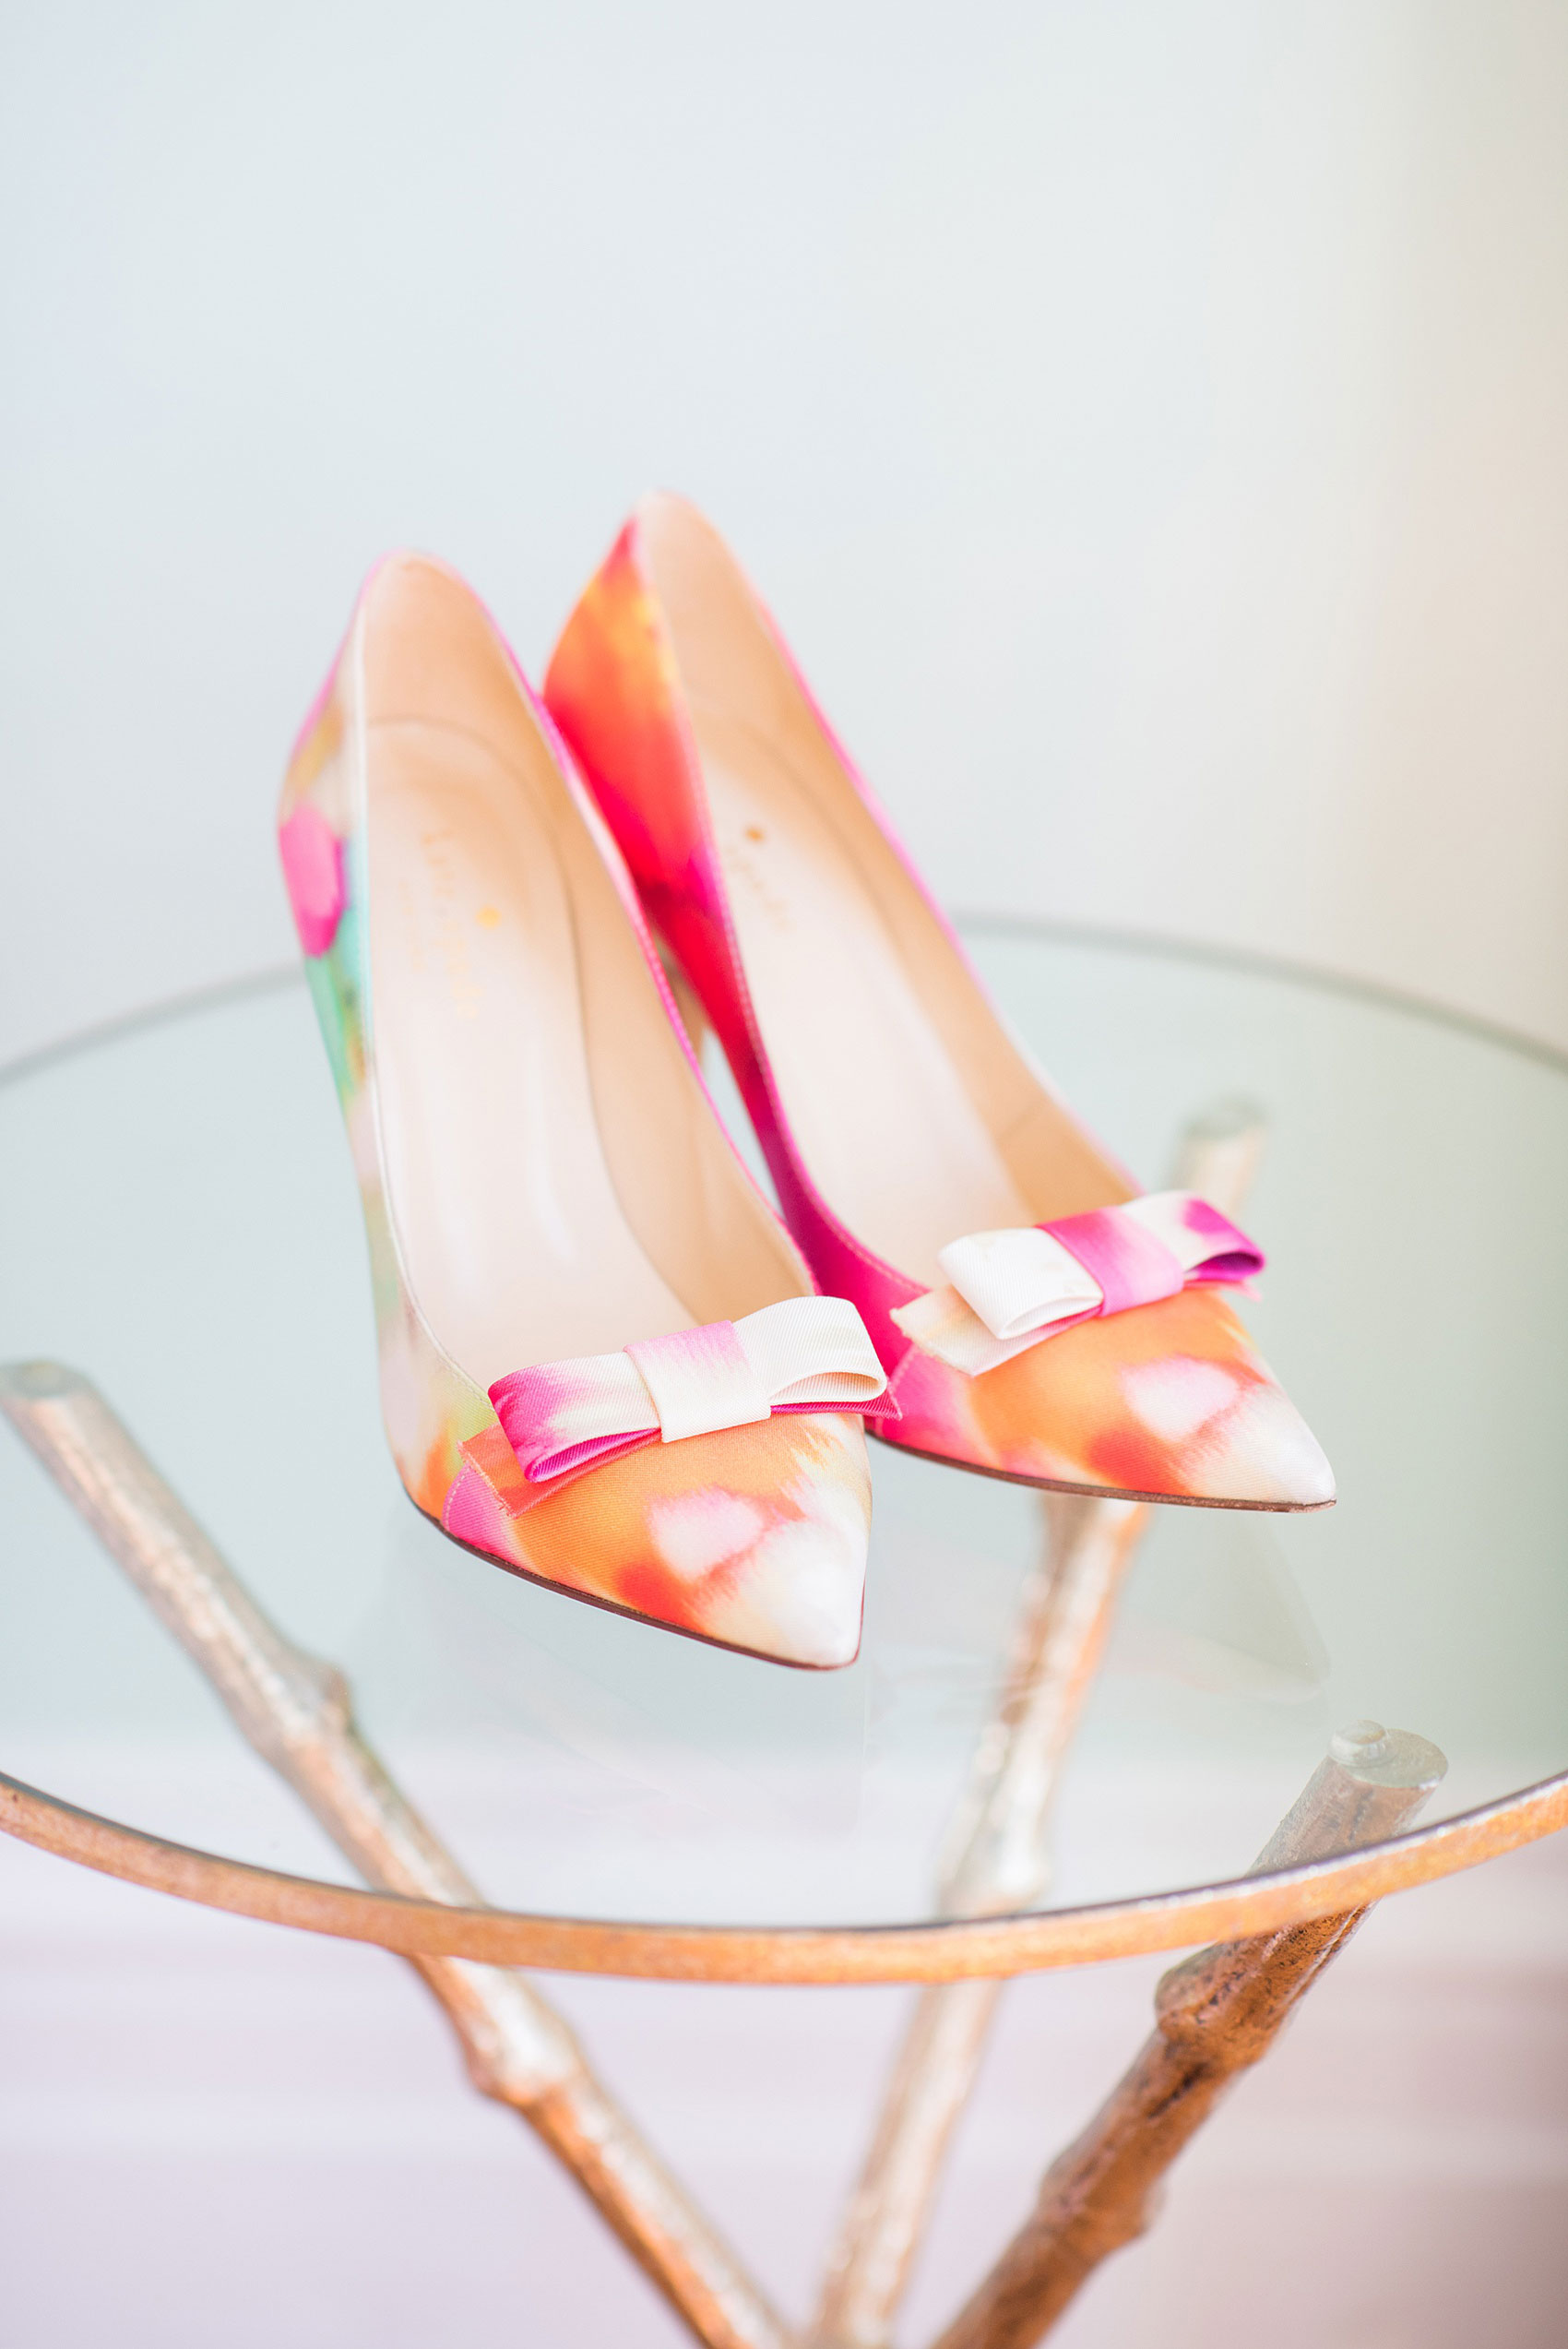 Mikkel Paige Photography pictures from a wedding at Merrimon-Wynne House in Raleigh, NC. Photo of the bride's colorful Ikat Kate Spade shoes.